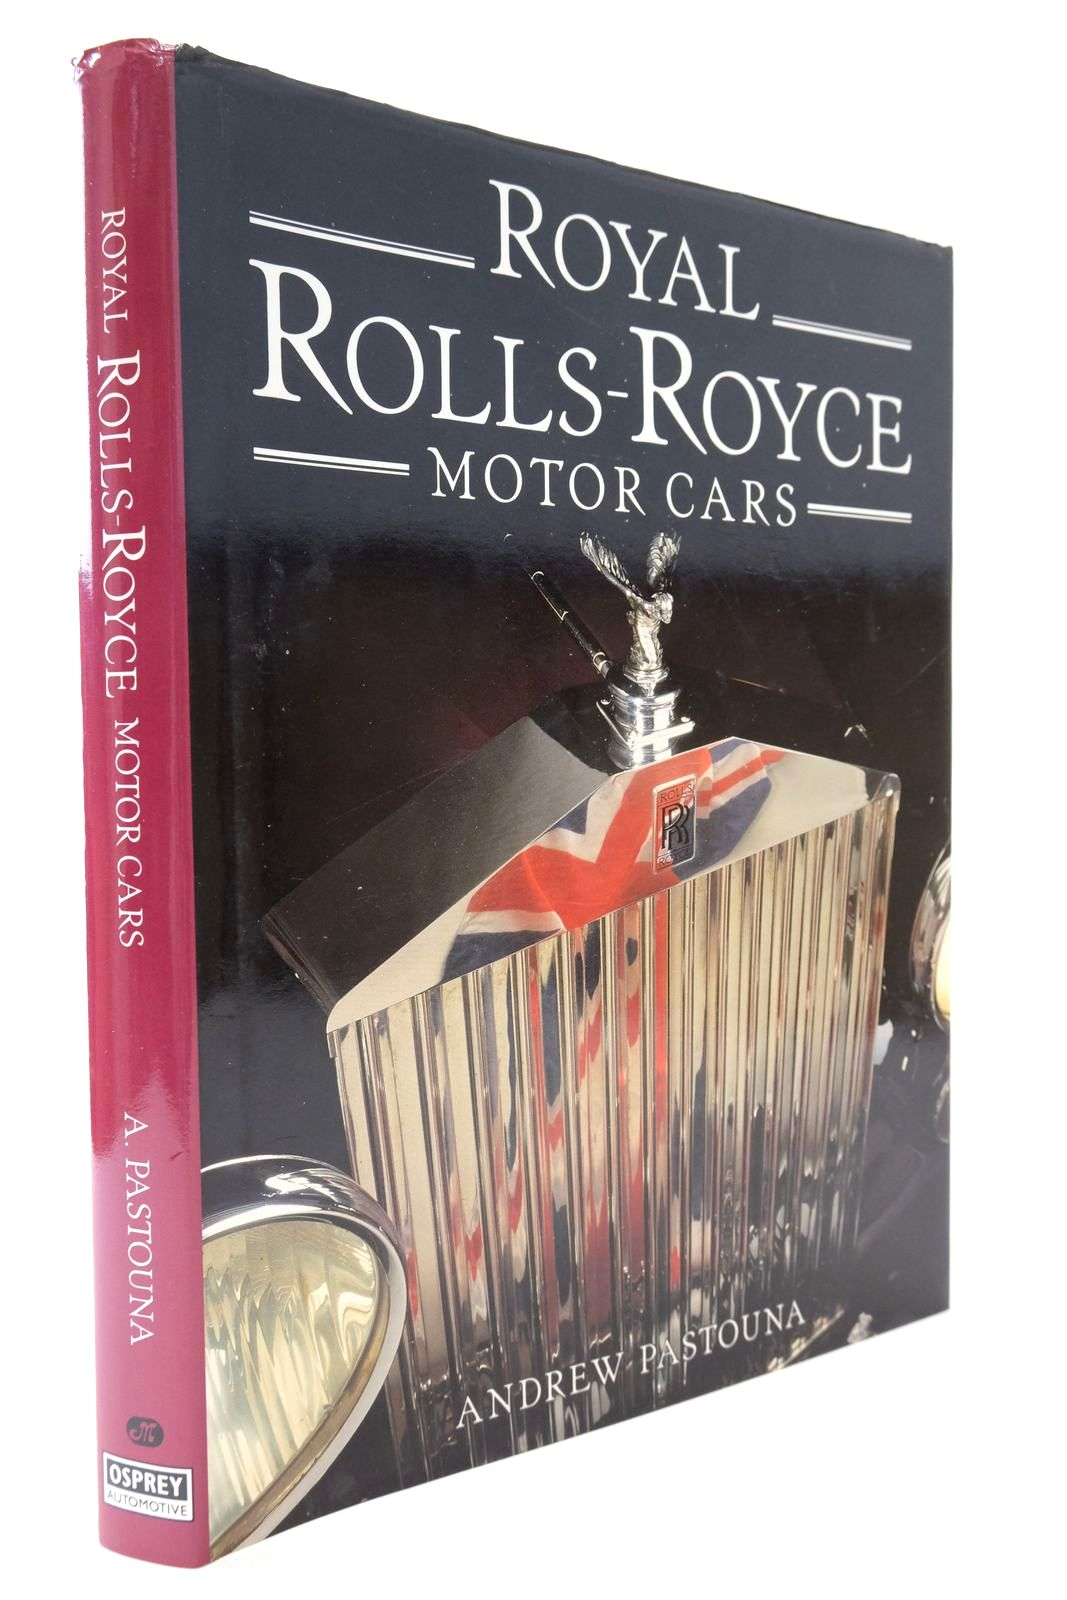 Photo of ROYAL ROLLS-ROYCE MOTOR CARS- Stock Number: 2132848